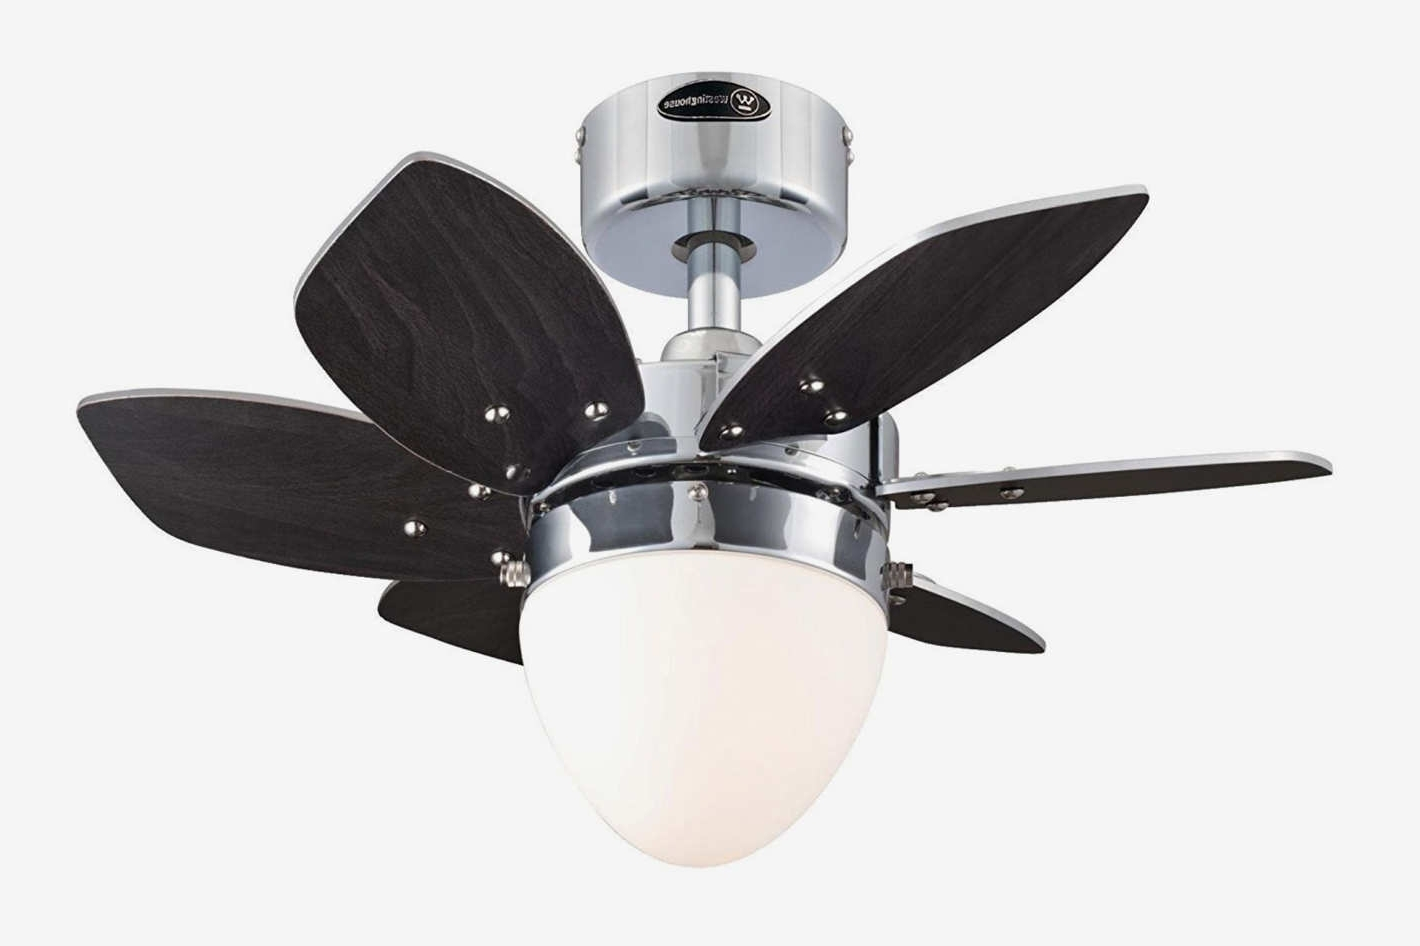 Outdoor Ceiling Fan With Light Under $100 Inside Newest The 9 Best Ceiling Fans On Amazon (View 11 of 20)